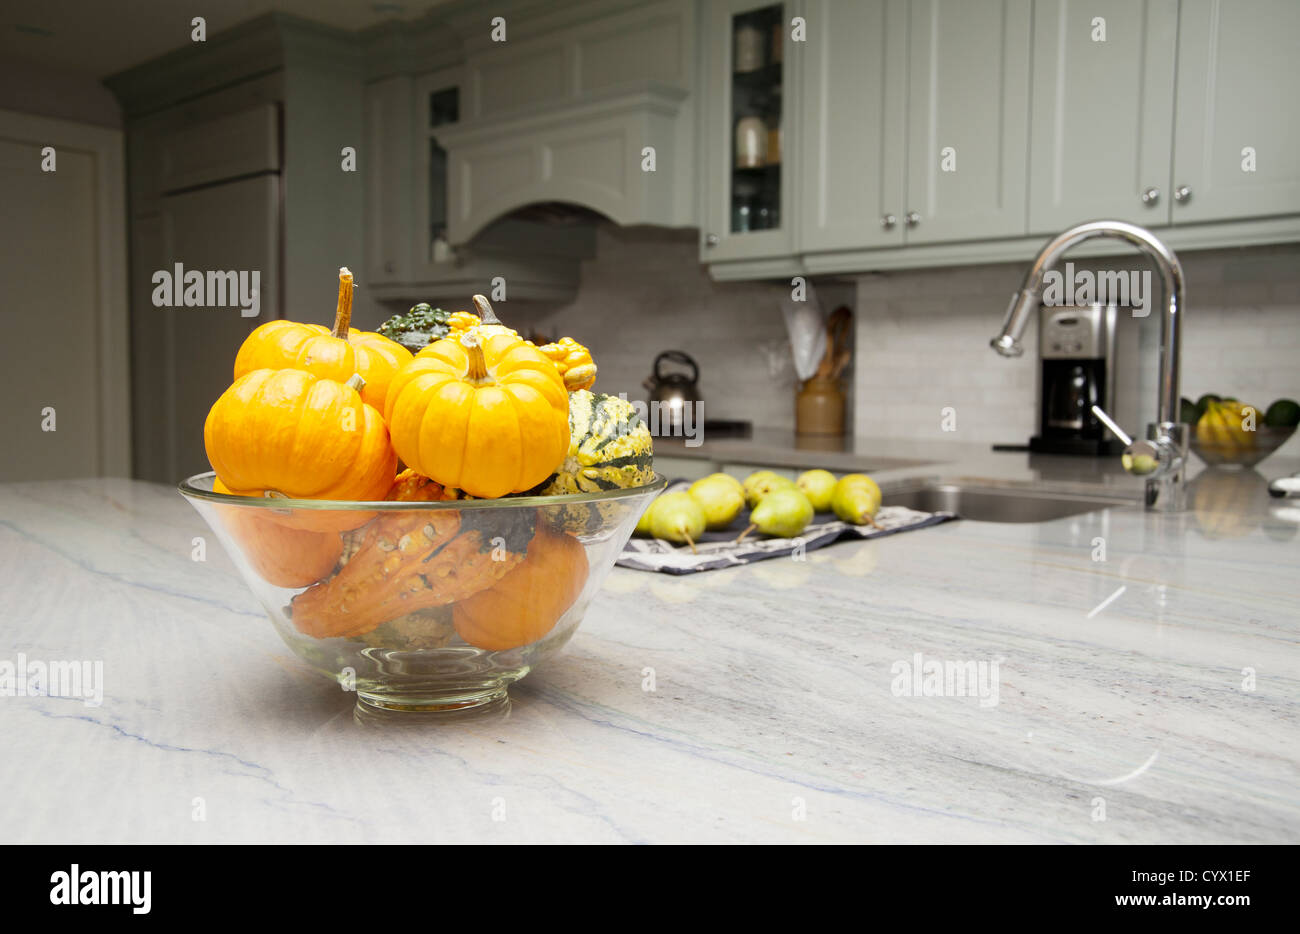 Bow of mini pumpkins and gourds on kitchen counter of home - Stock Image